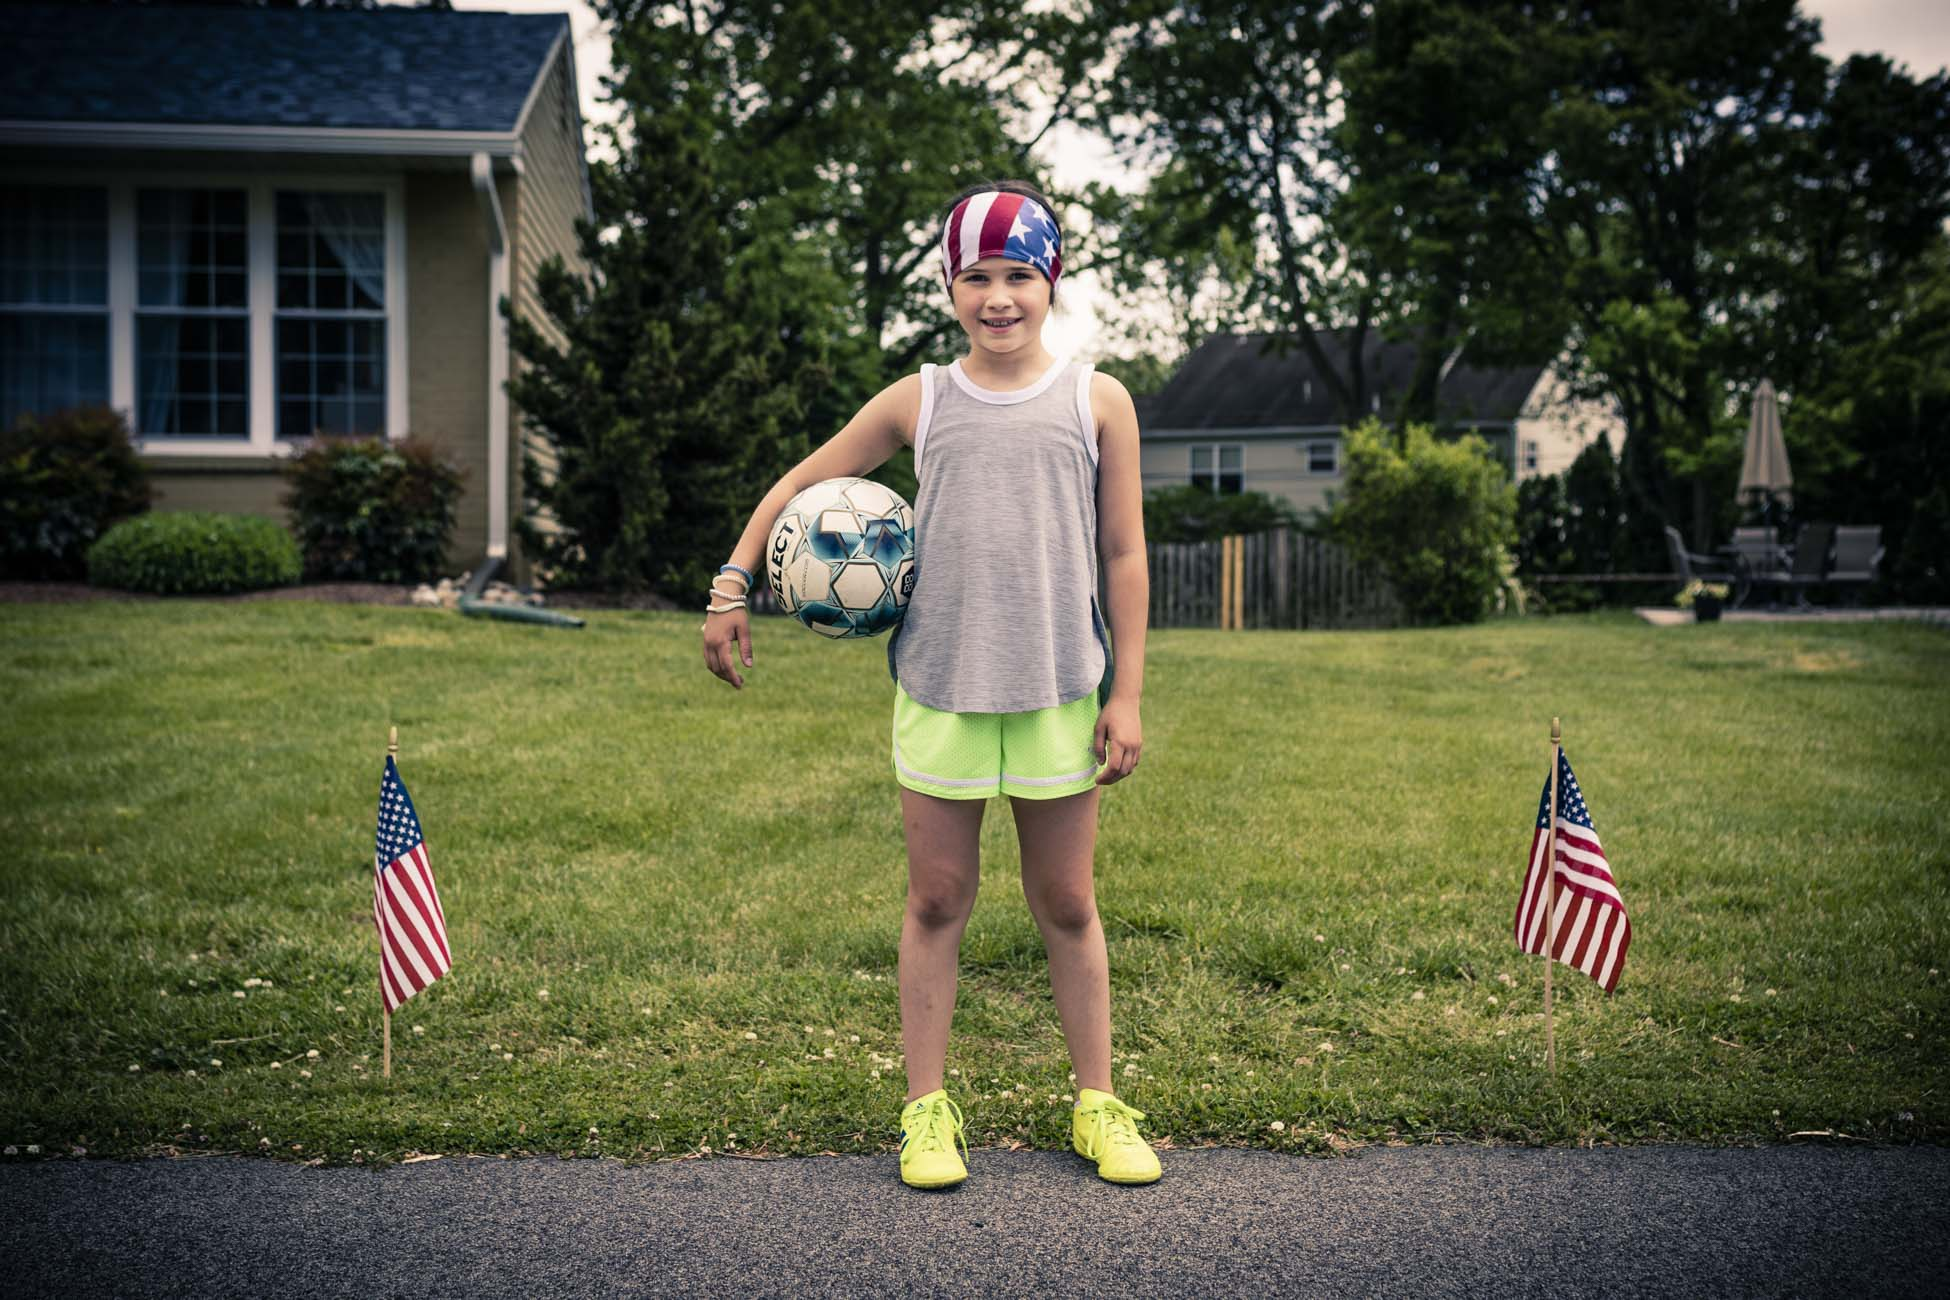 Young girl with soccer ball